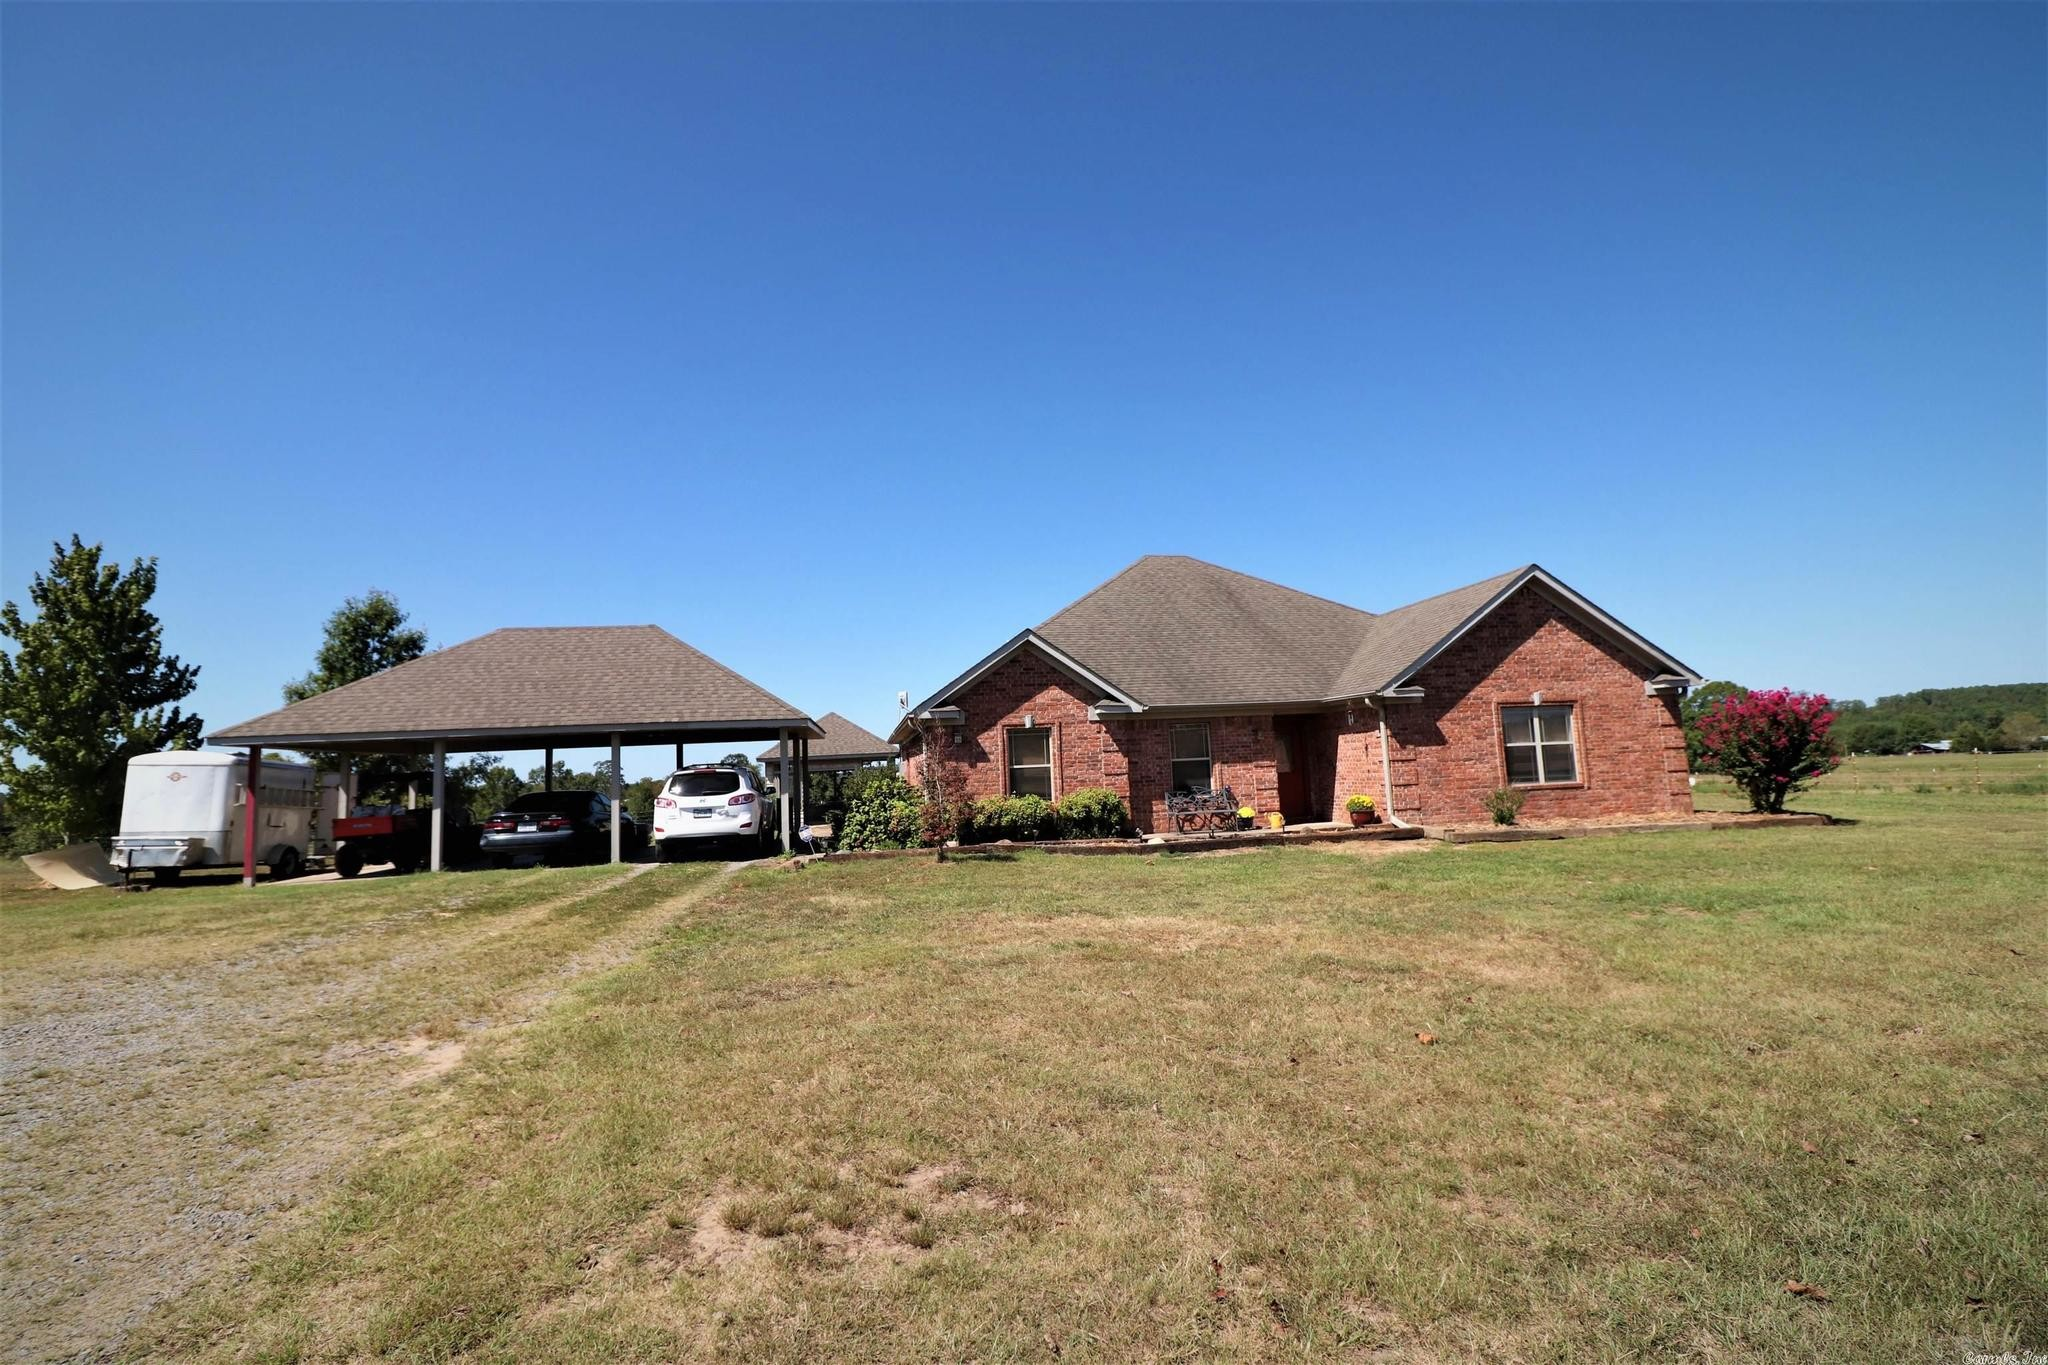 House In Quitman